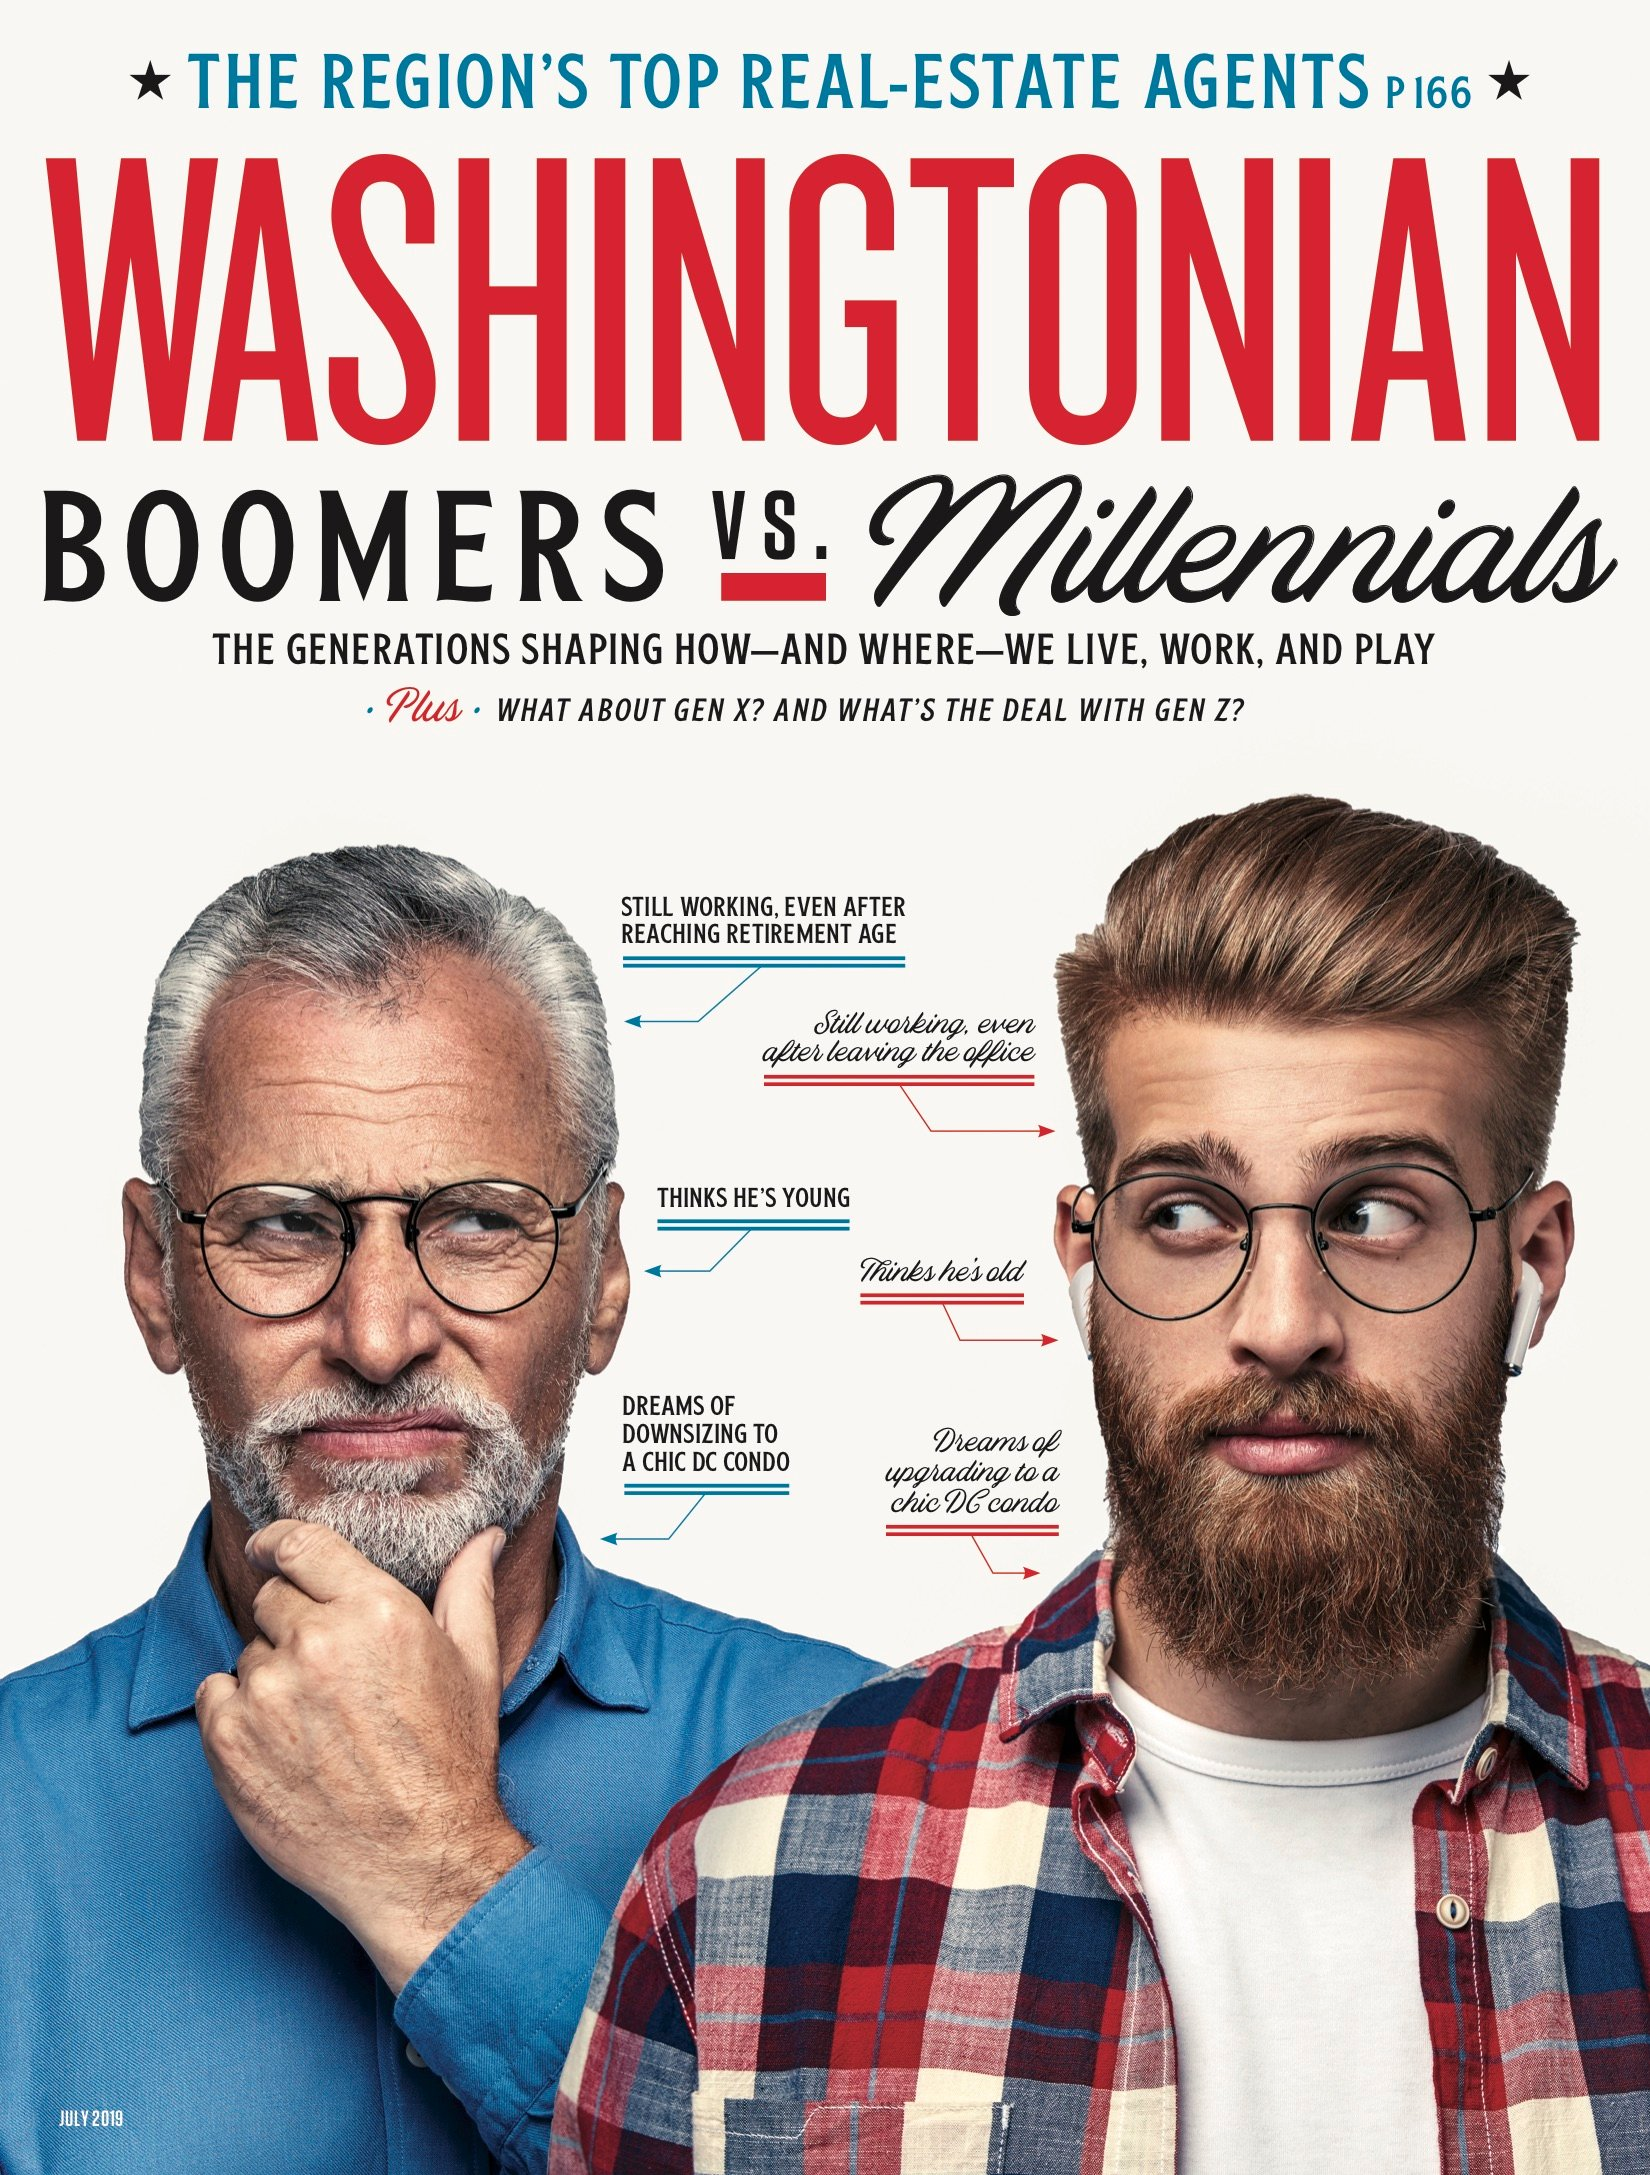 July 2019: Boomers vs. Millennials